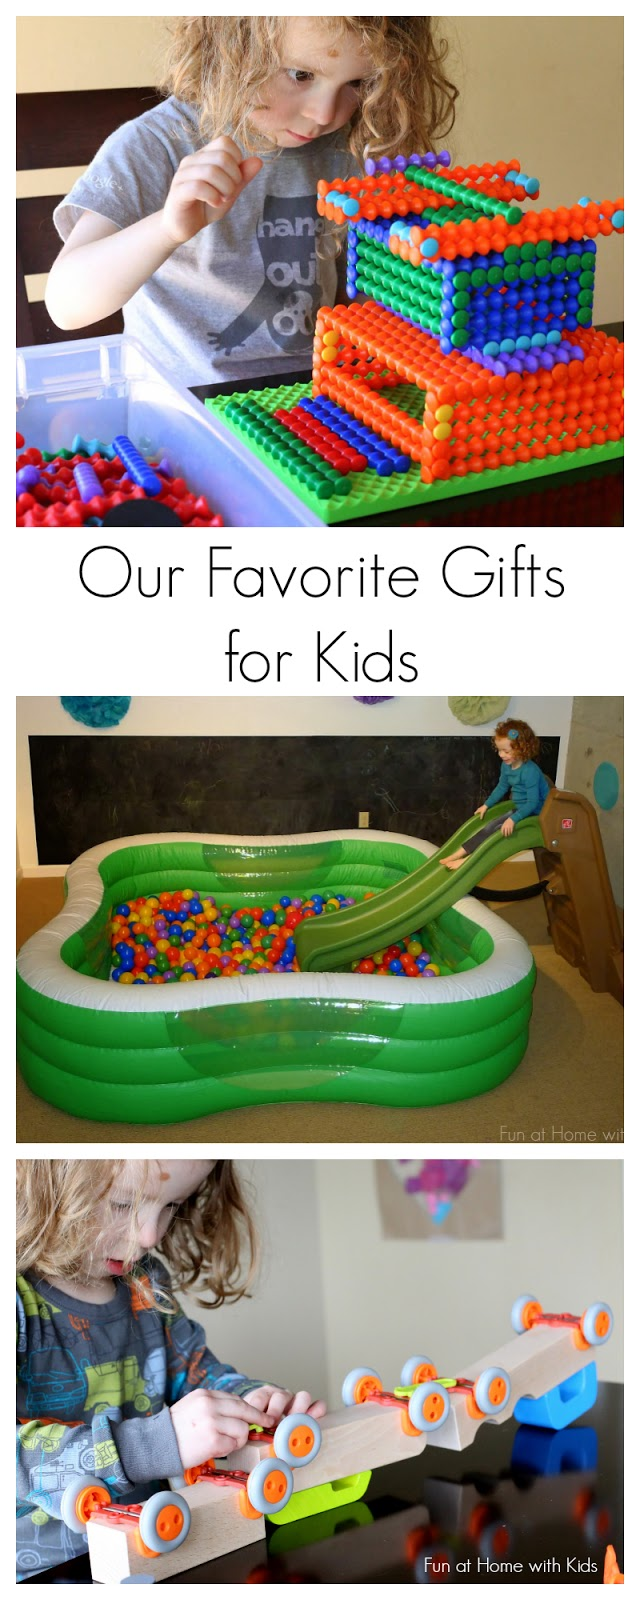 10 ideas for unusual and unique gifts for children ages two to ten or older from Fun at Home with Kids